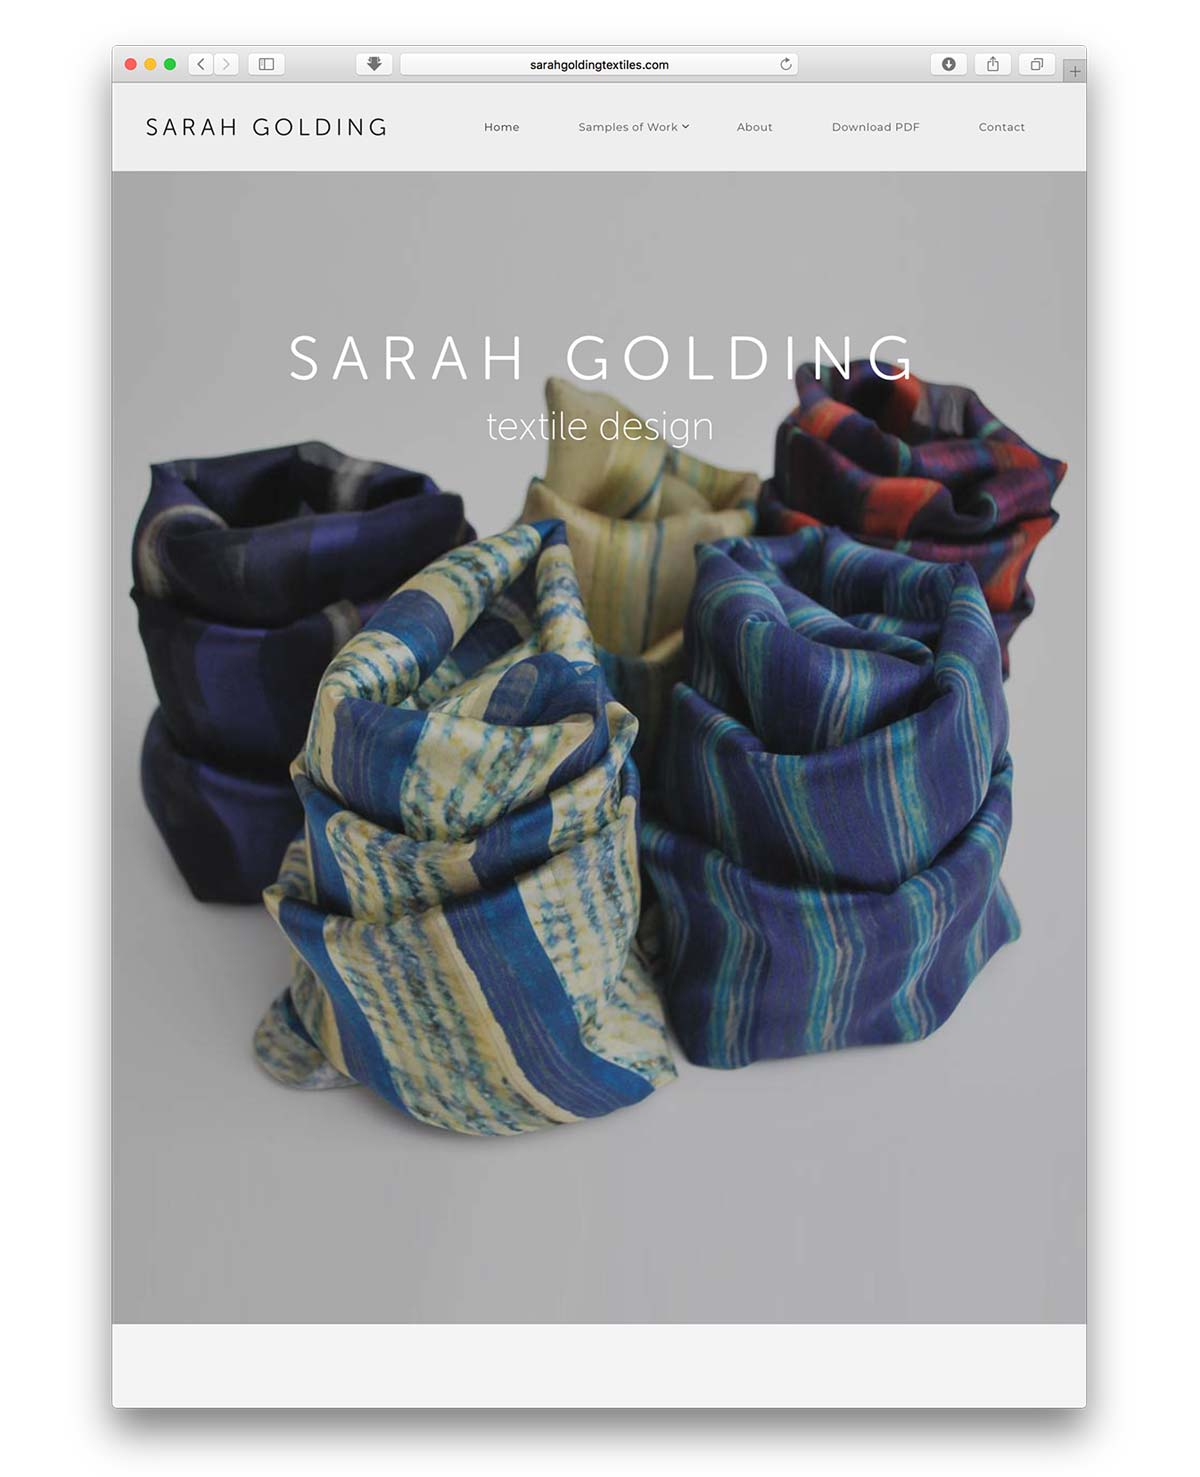 Sarah Golding Textile Design website design